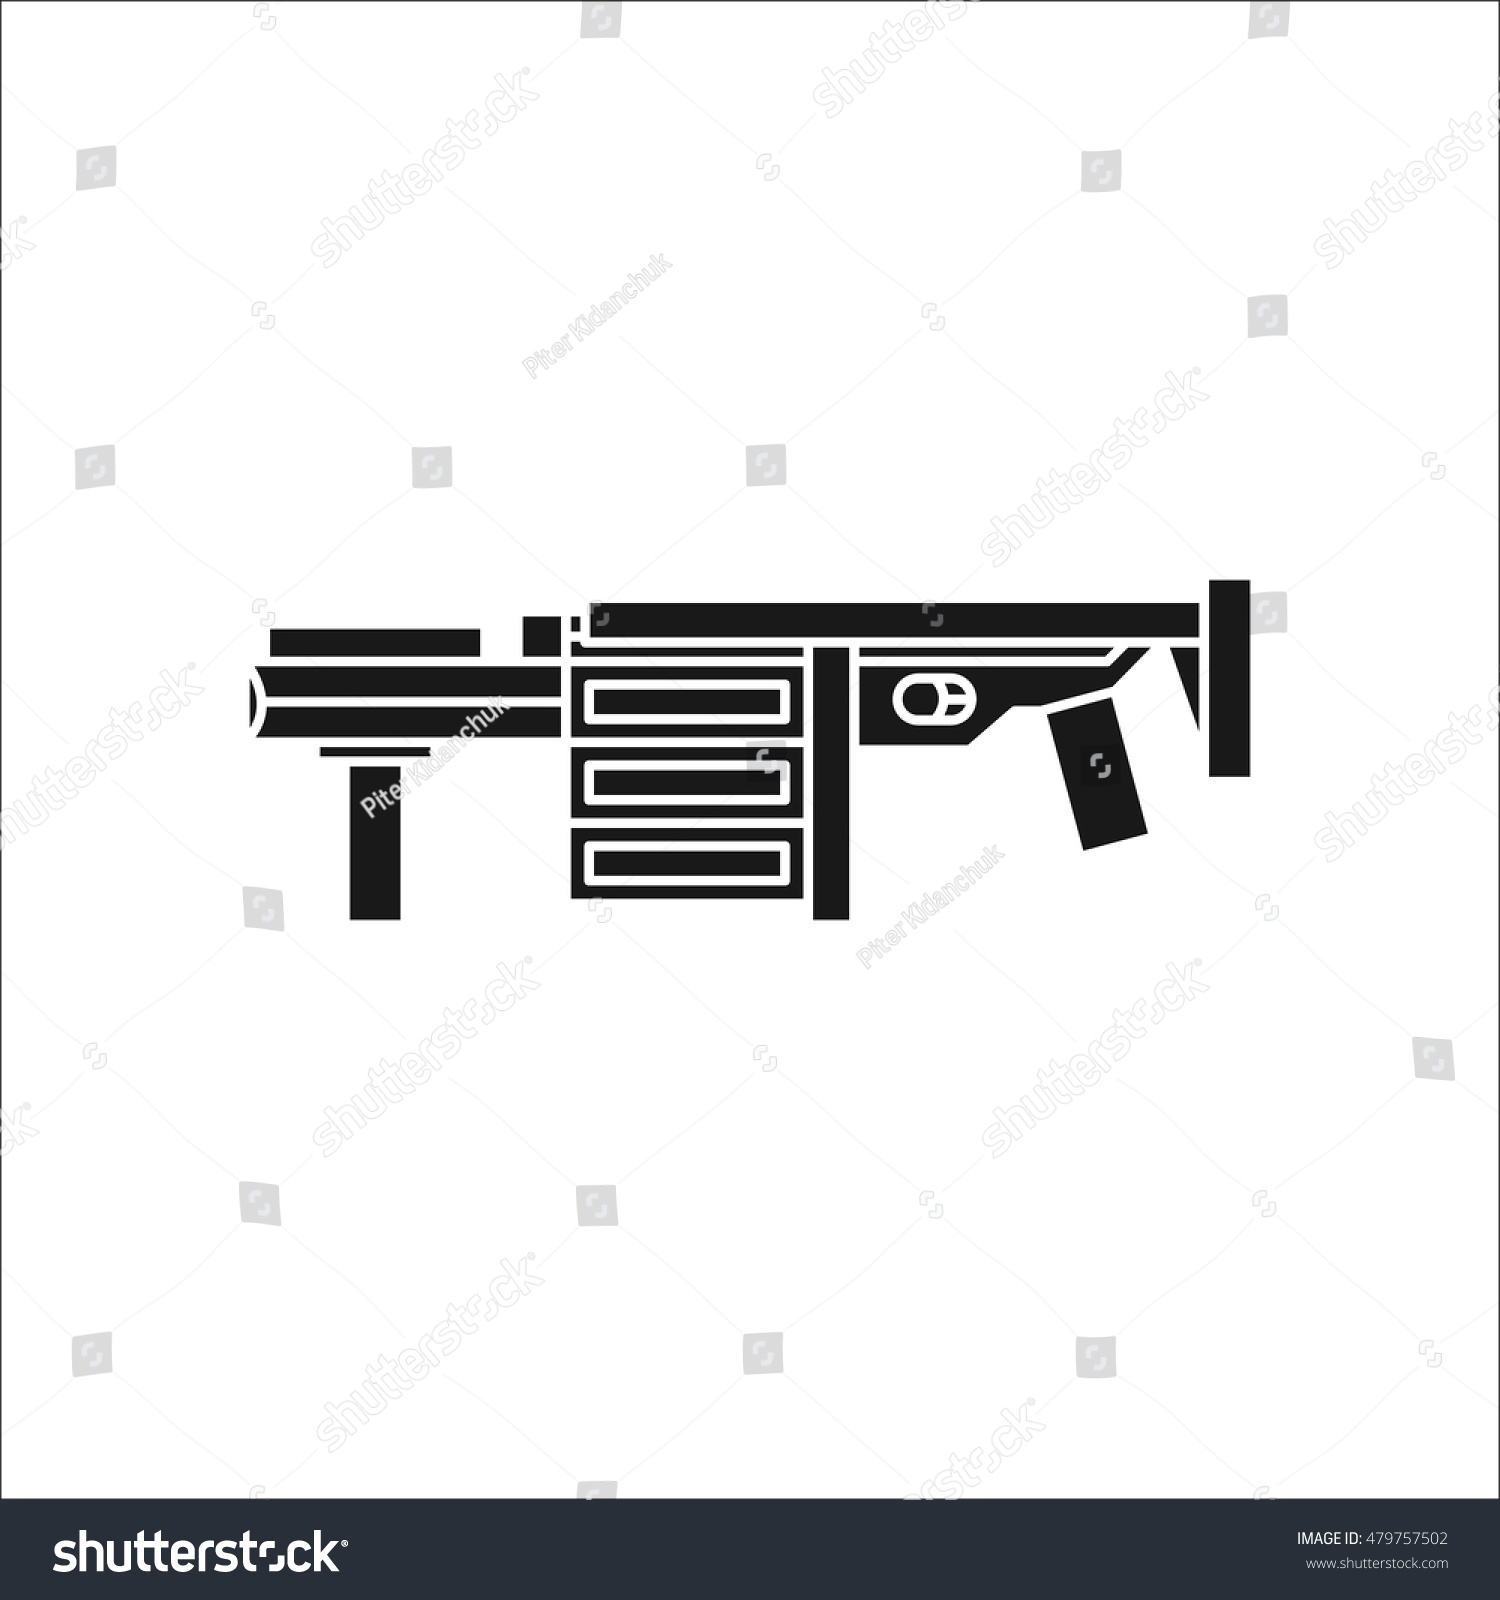 Text Symbol Gun Image Collections Meaning Of This Symbol In Texting